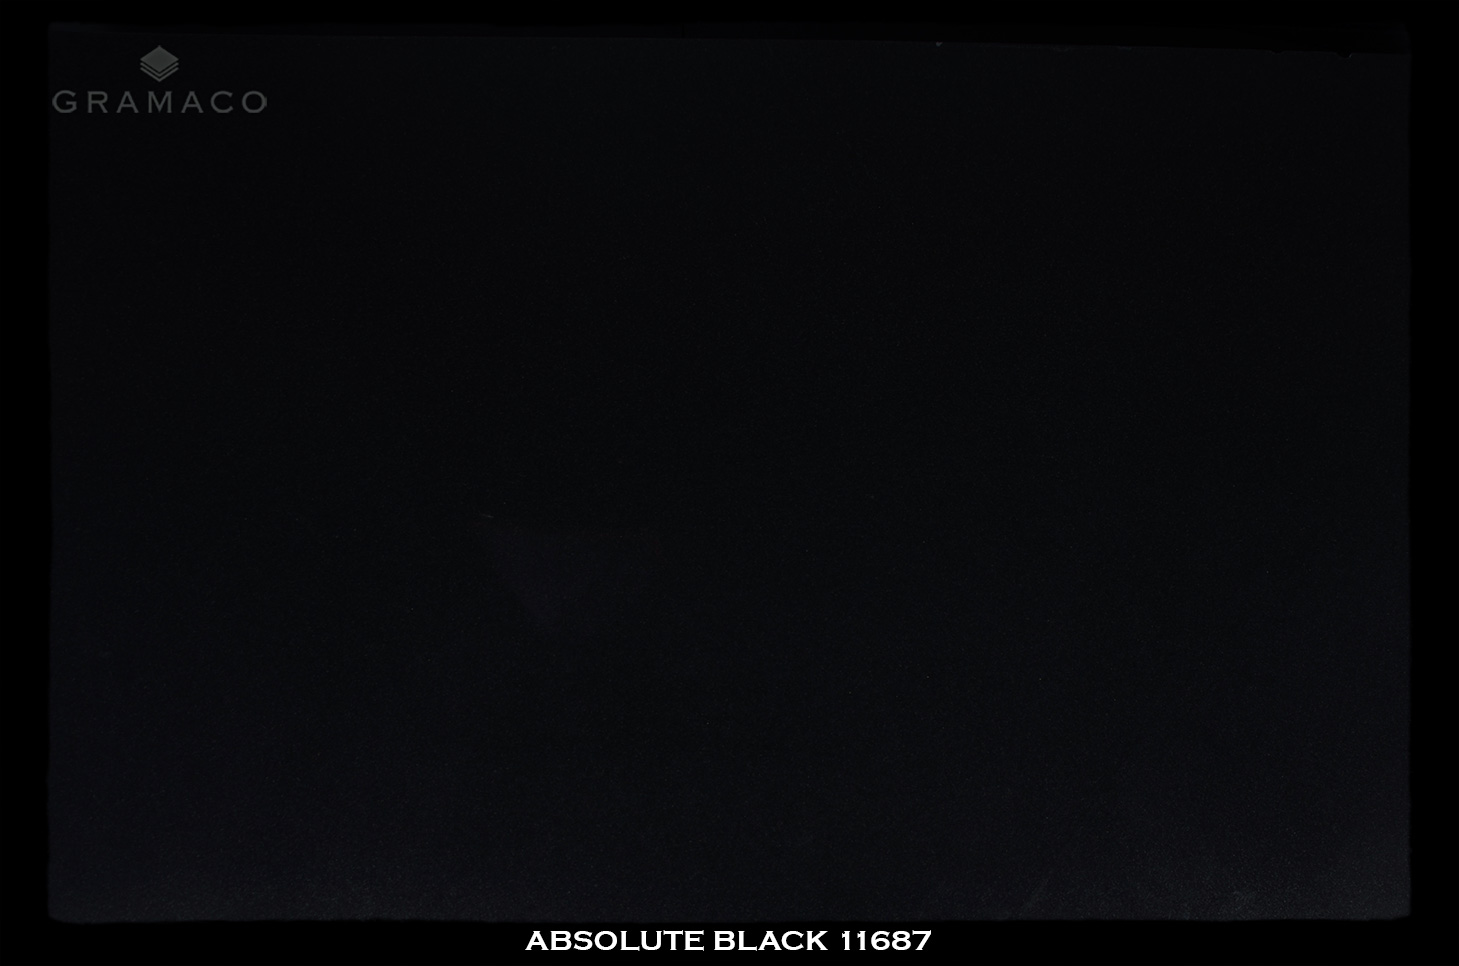 ABSOLUTE-BLACK-11687-slab